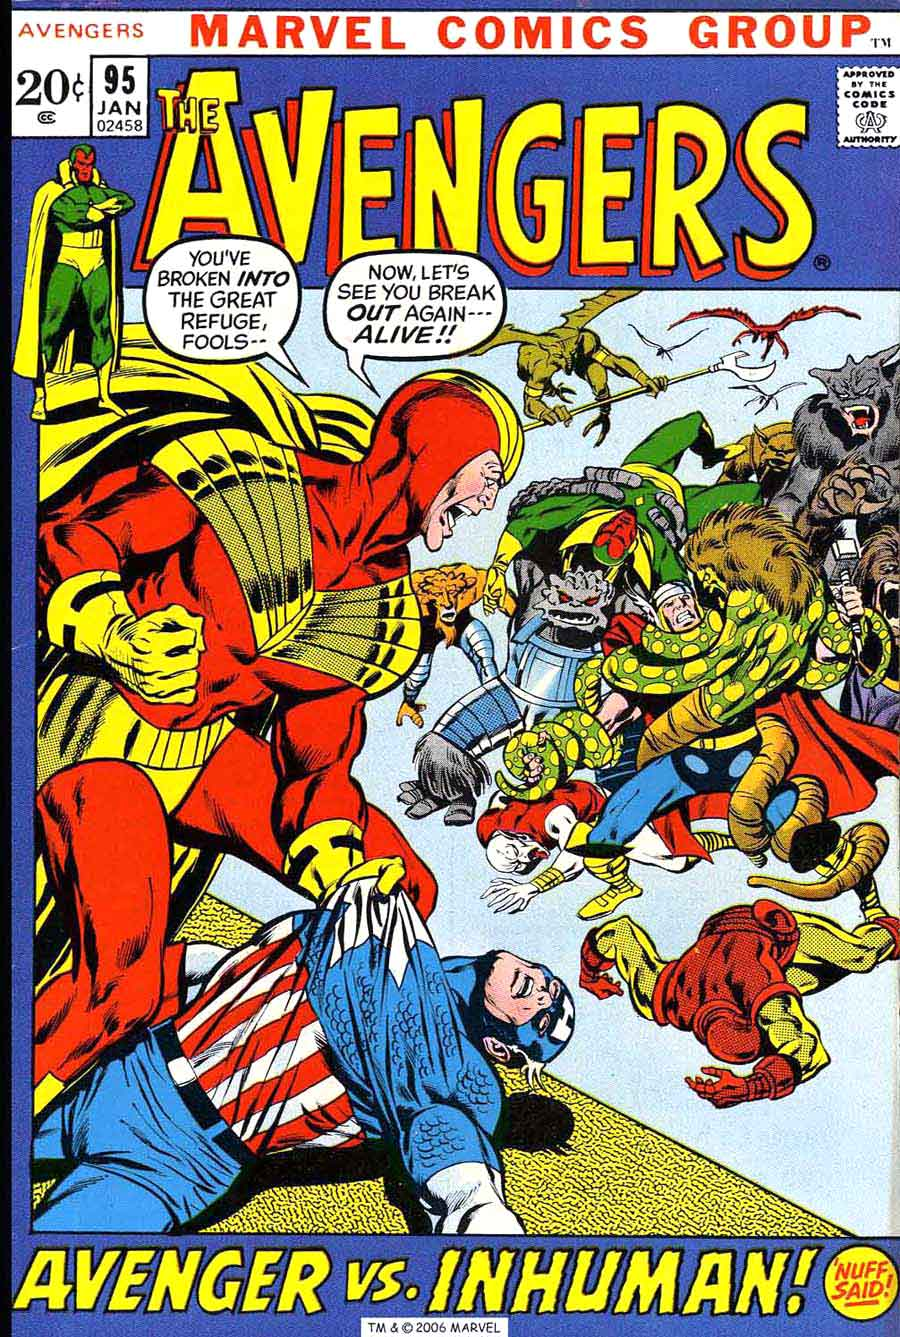 Avengers v1 #95 marvel comic book cover art